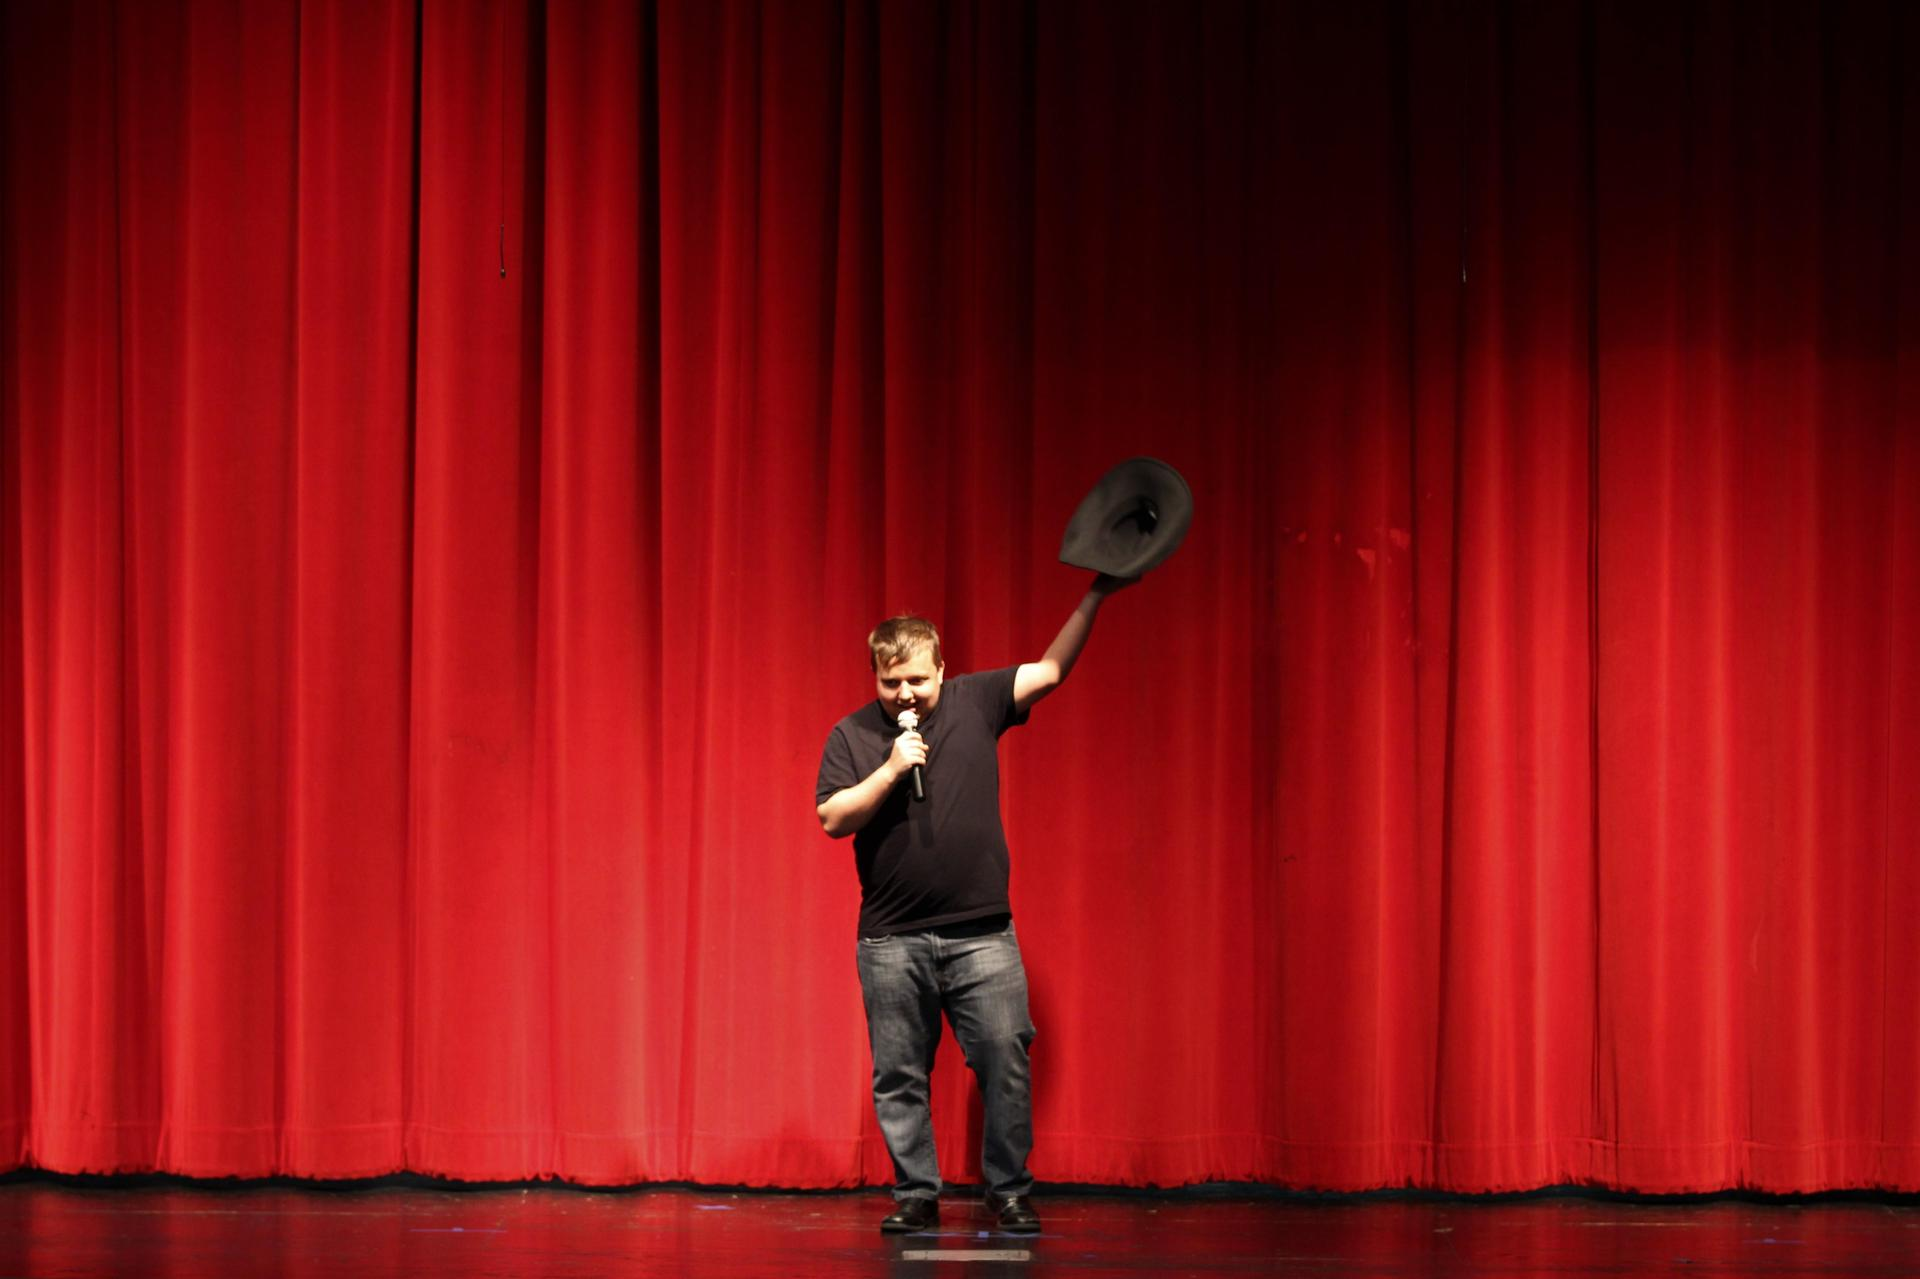 Jaxon Powell raising his hat in the air and singing at the Talent Show